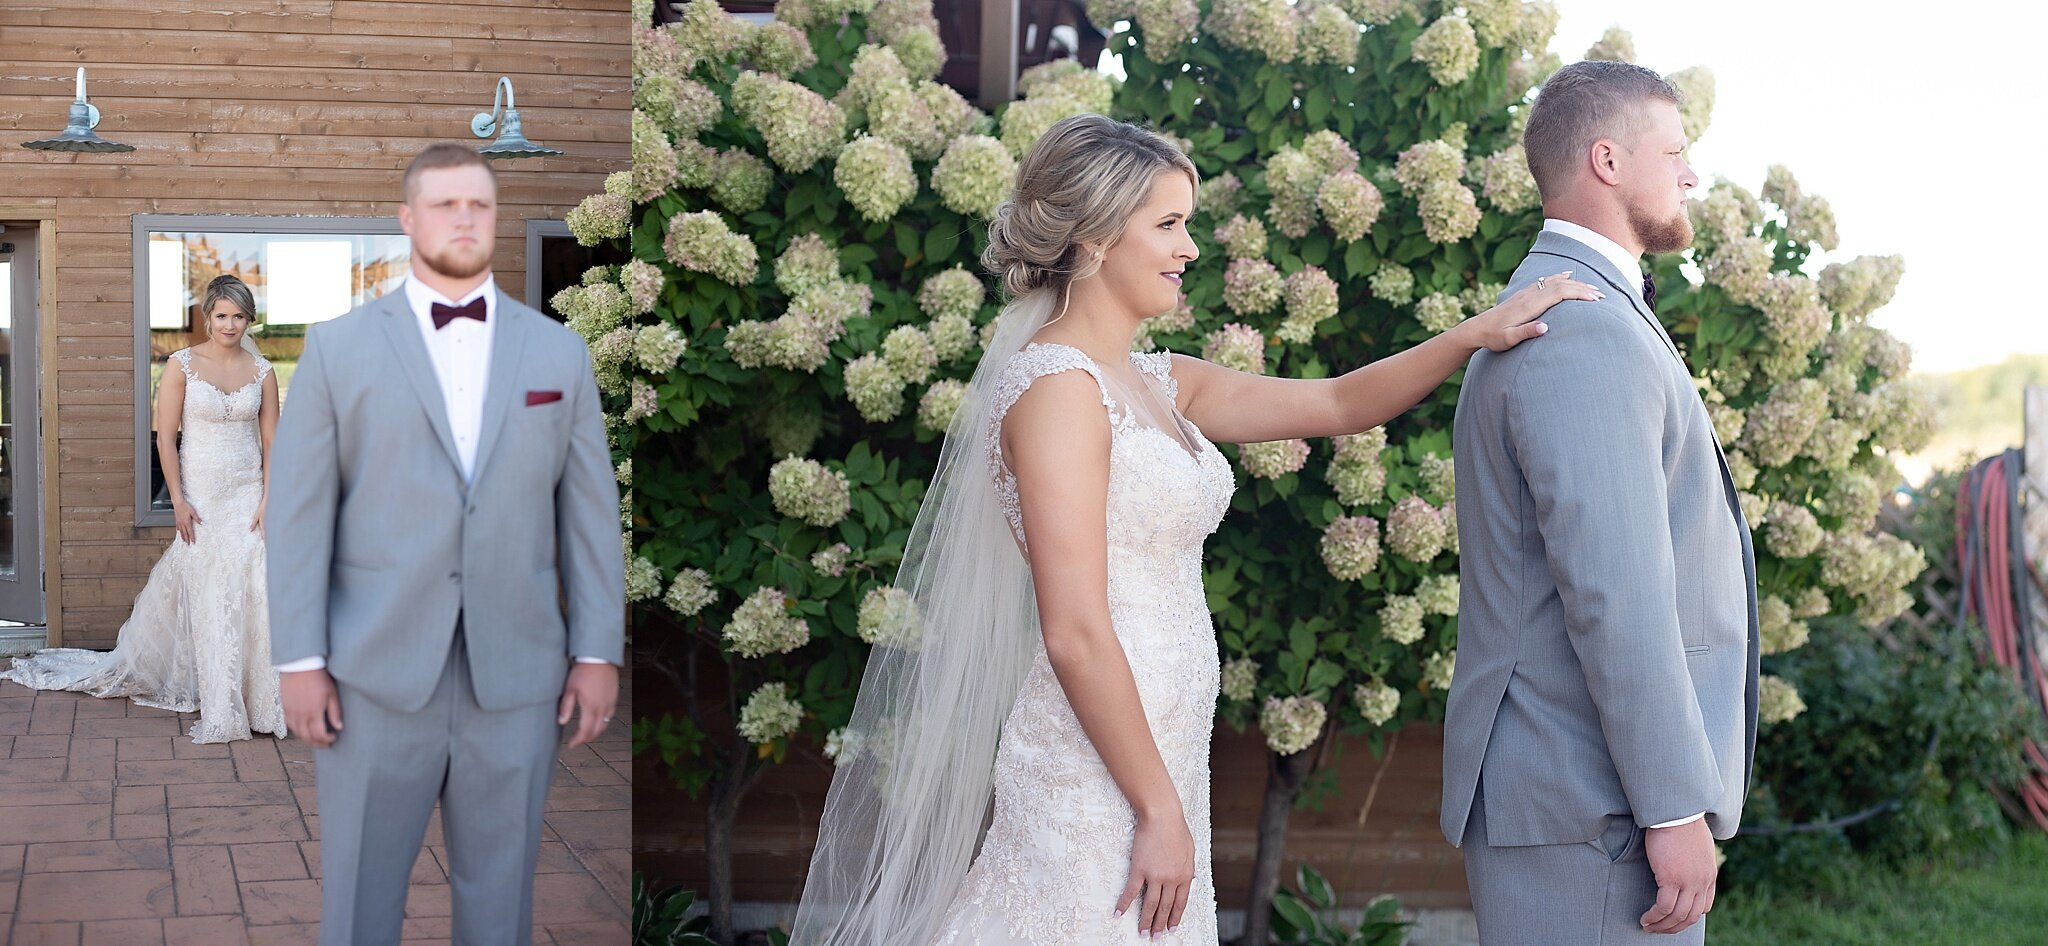 first look with bride and groom calico skies winery kate jones studios sioux falls south dakota